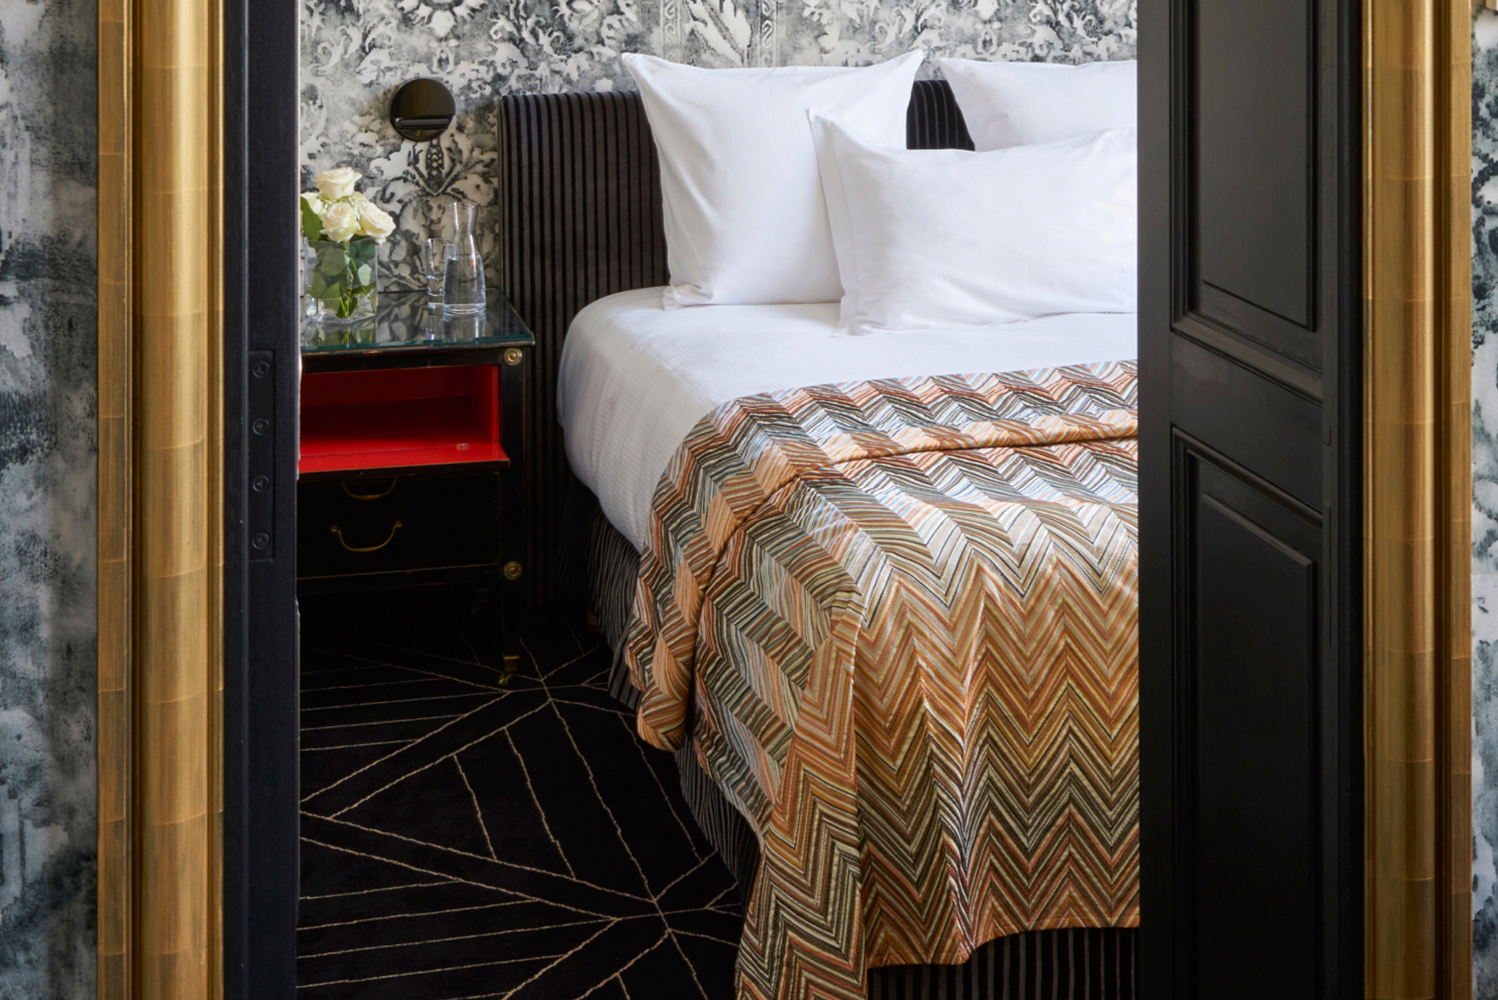 In the design of the suites, Didier Benderli used orange and yellow tones, combined with black and white accents.